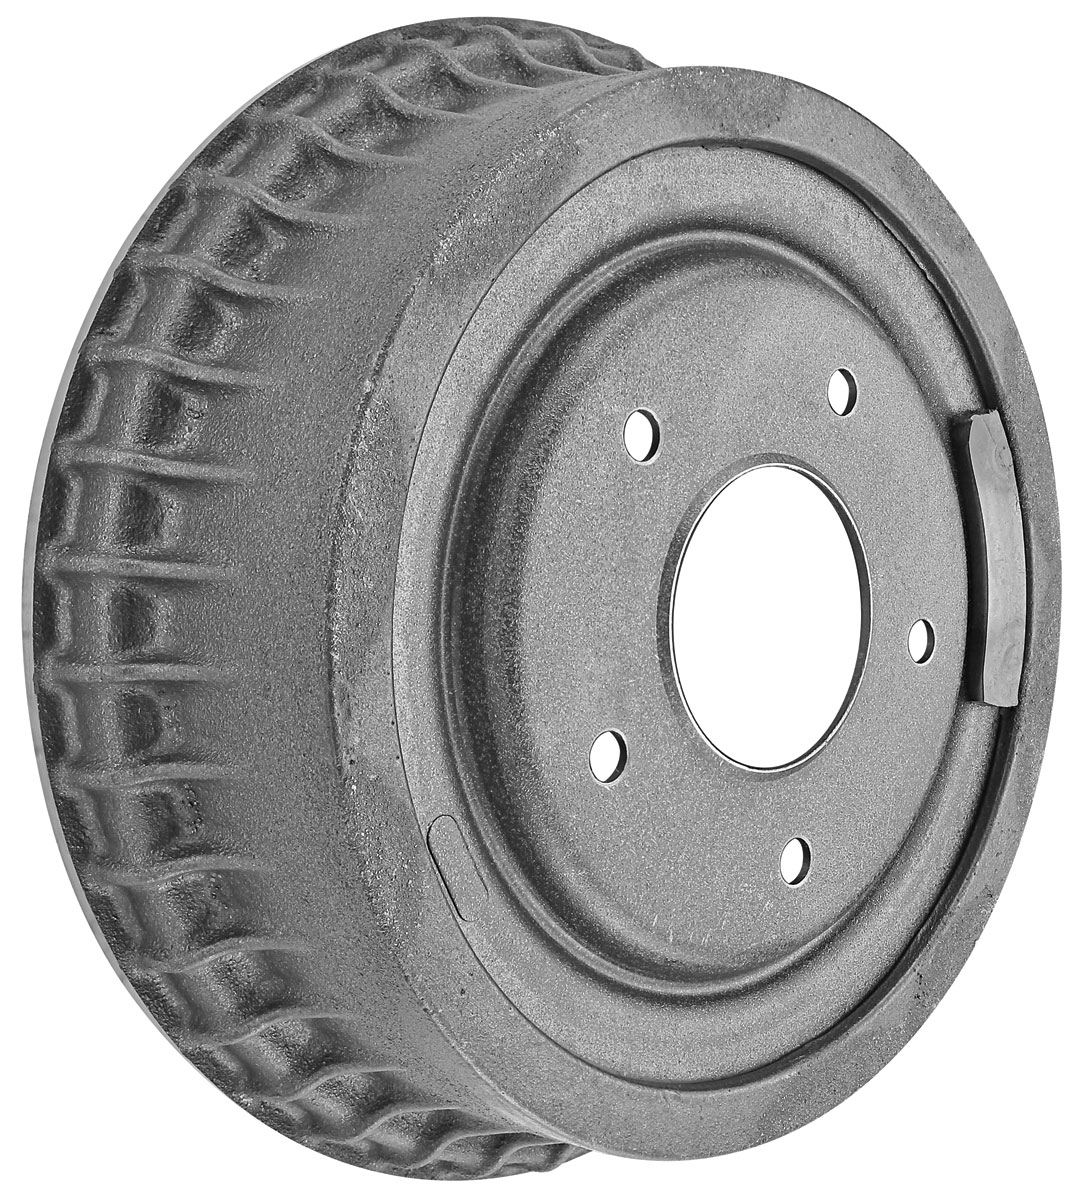 Photo of Brake Drums front or rear - Forward Control